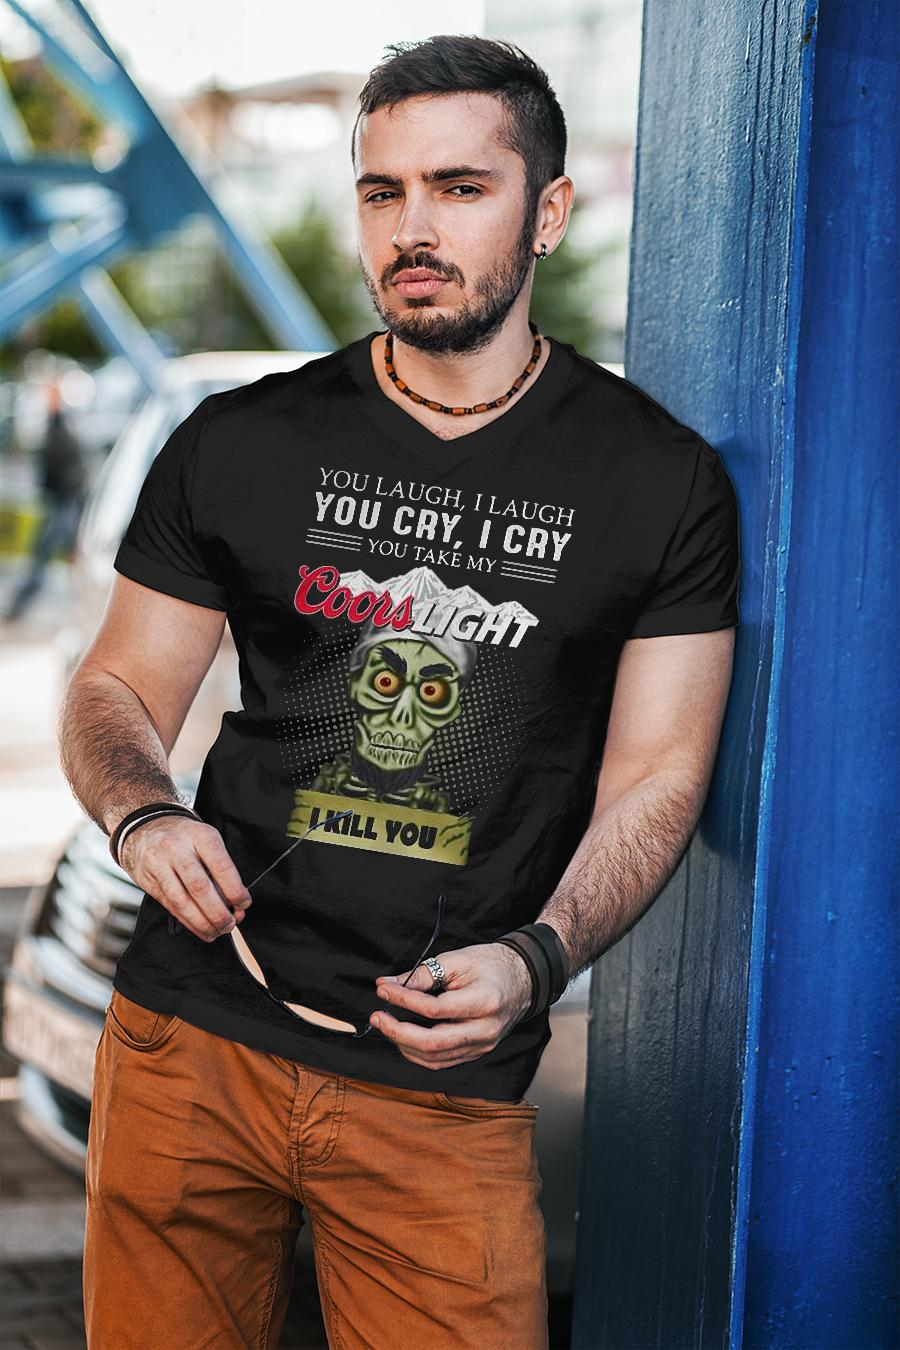 You laugh i laugh you cry i cry you take my coors light i kill you shirt unisex